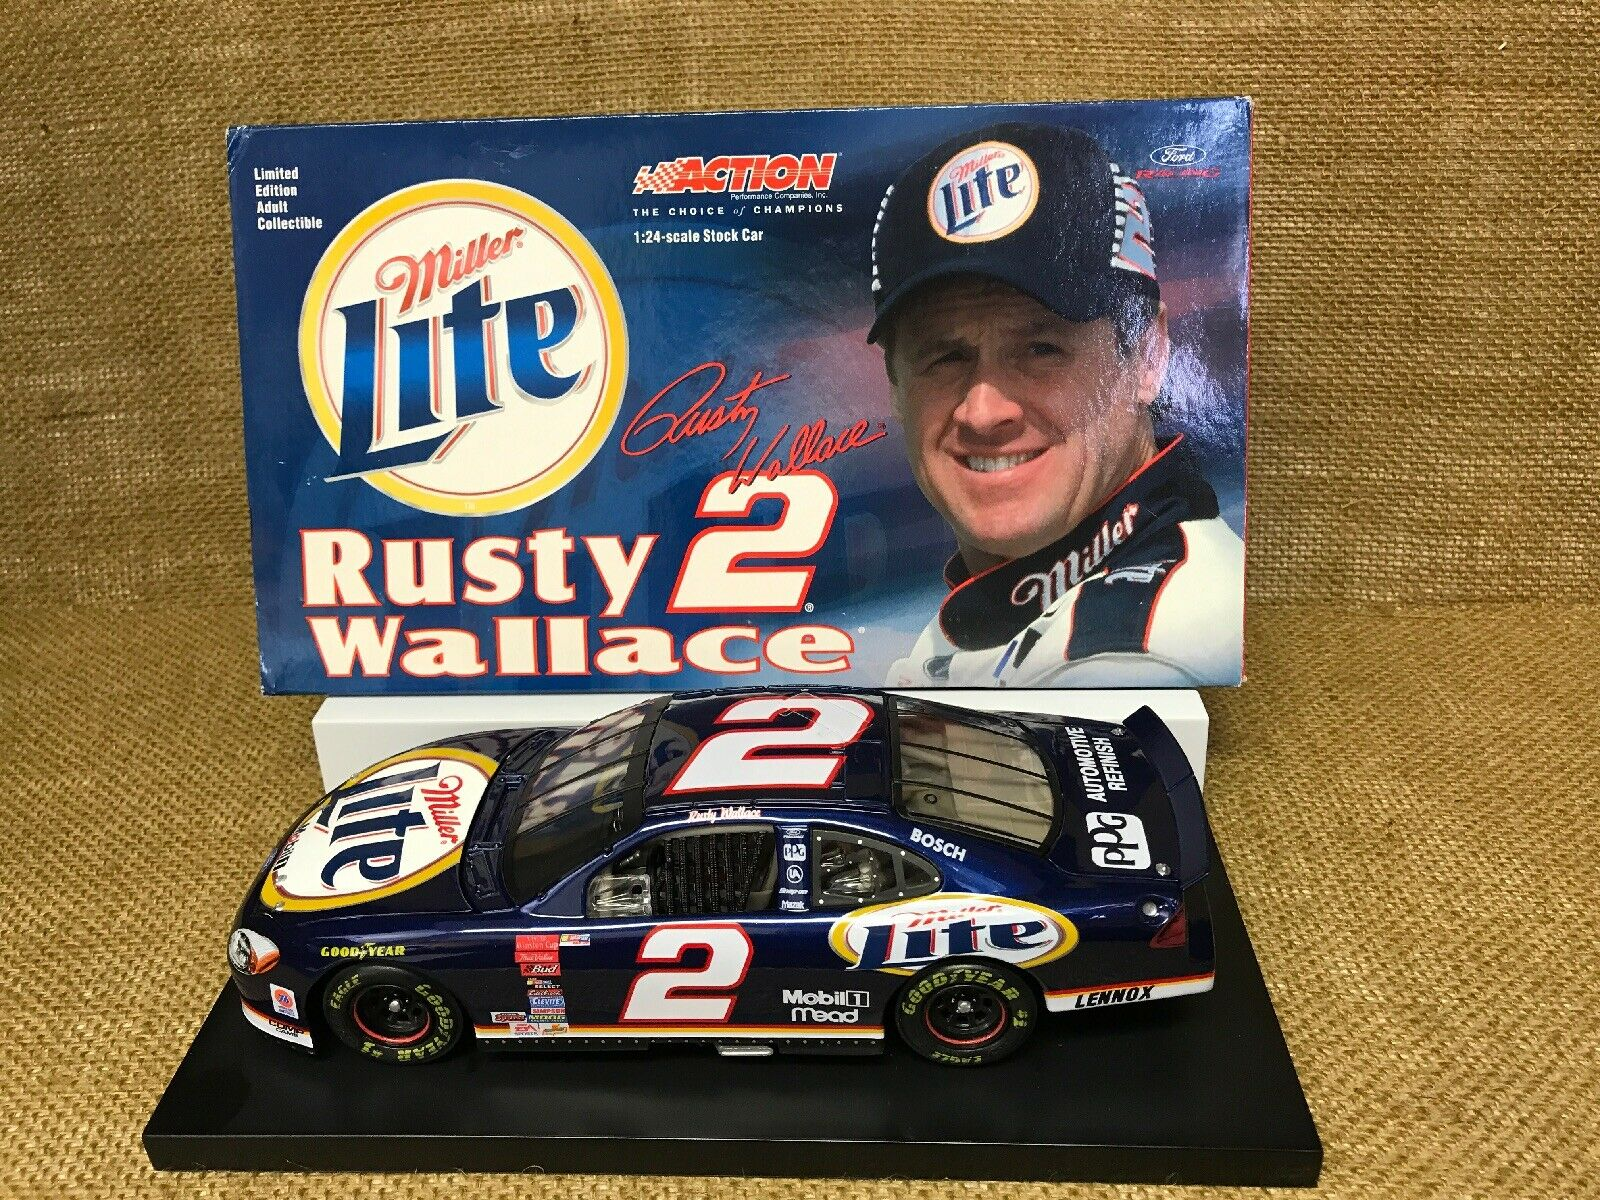 Action 2001 NASCAR Miller Lite Rusty Wallace 2001 Ford Taurus